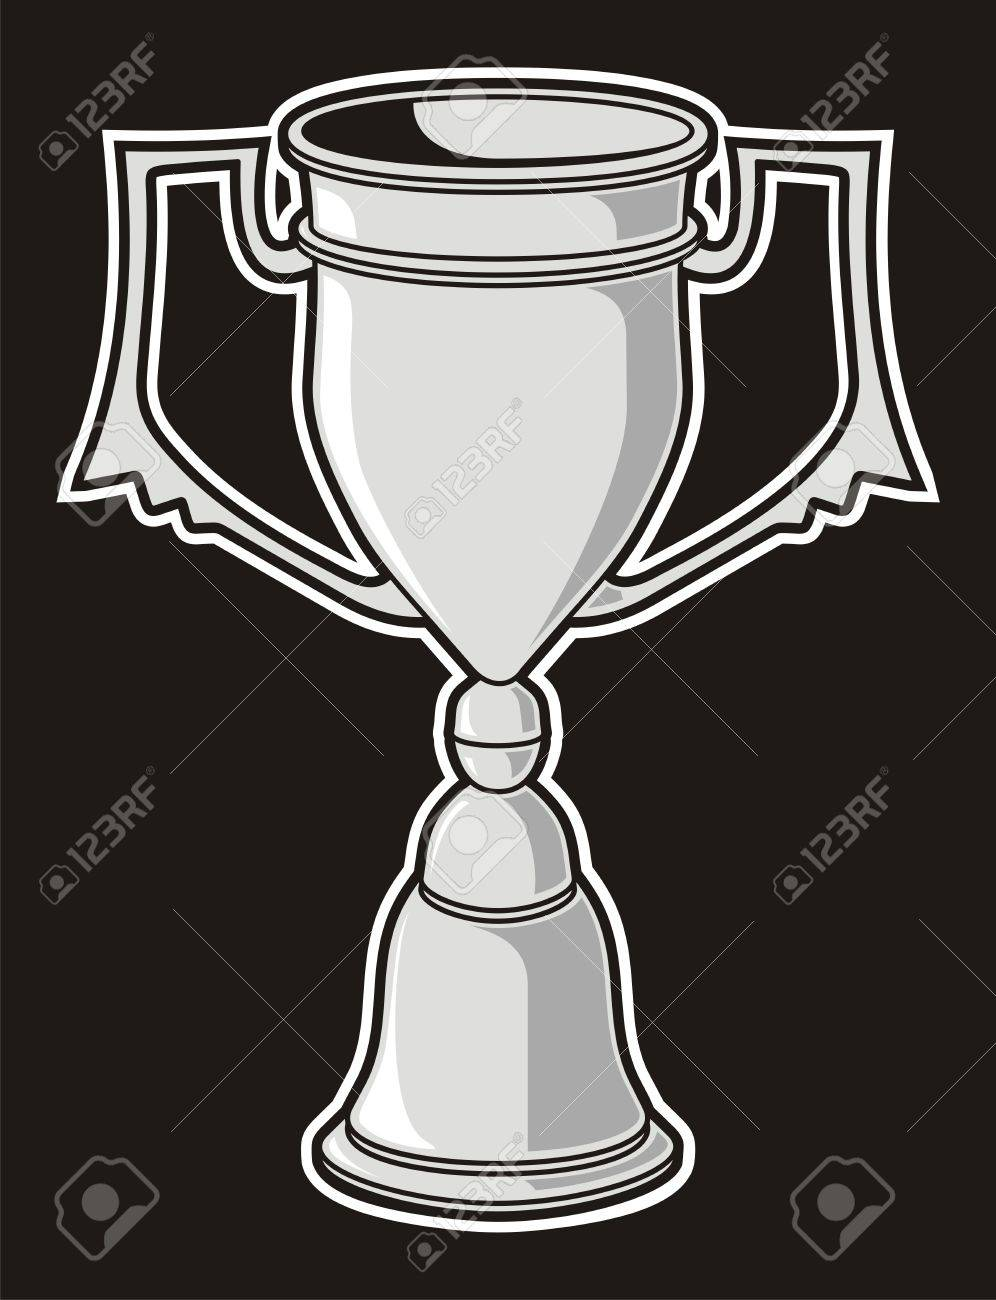 Grayscale cup award isolated on black background. - 19612098